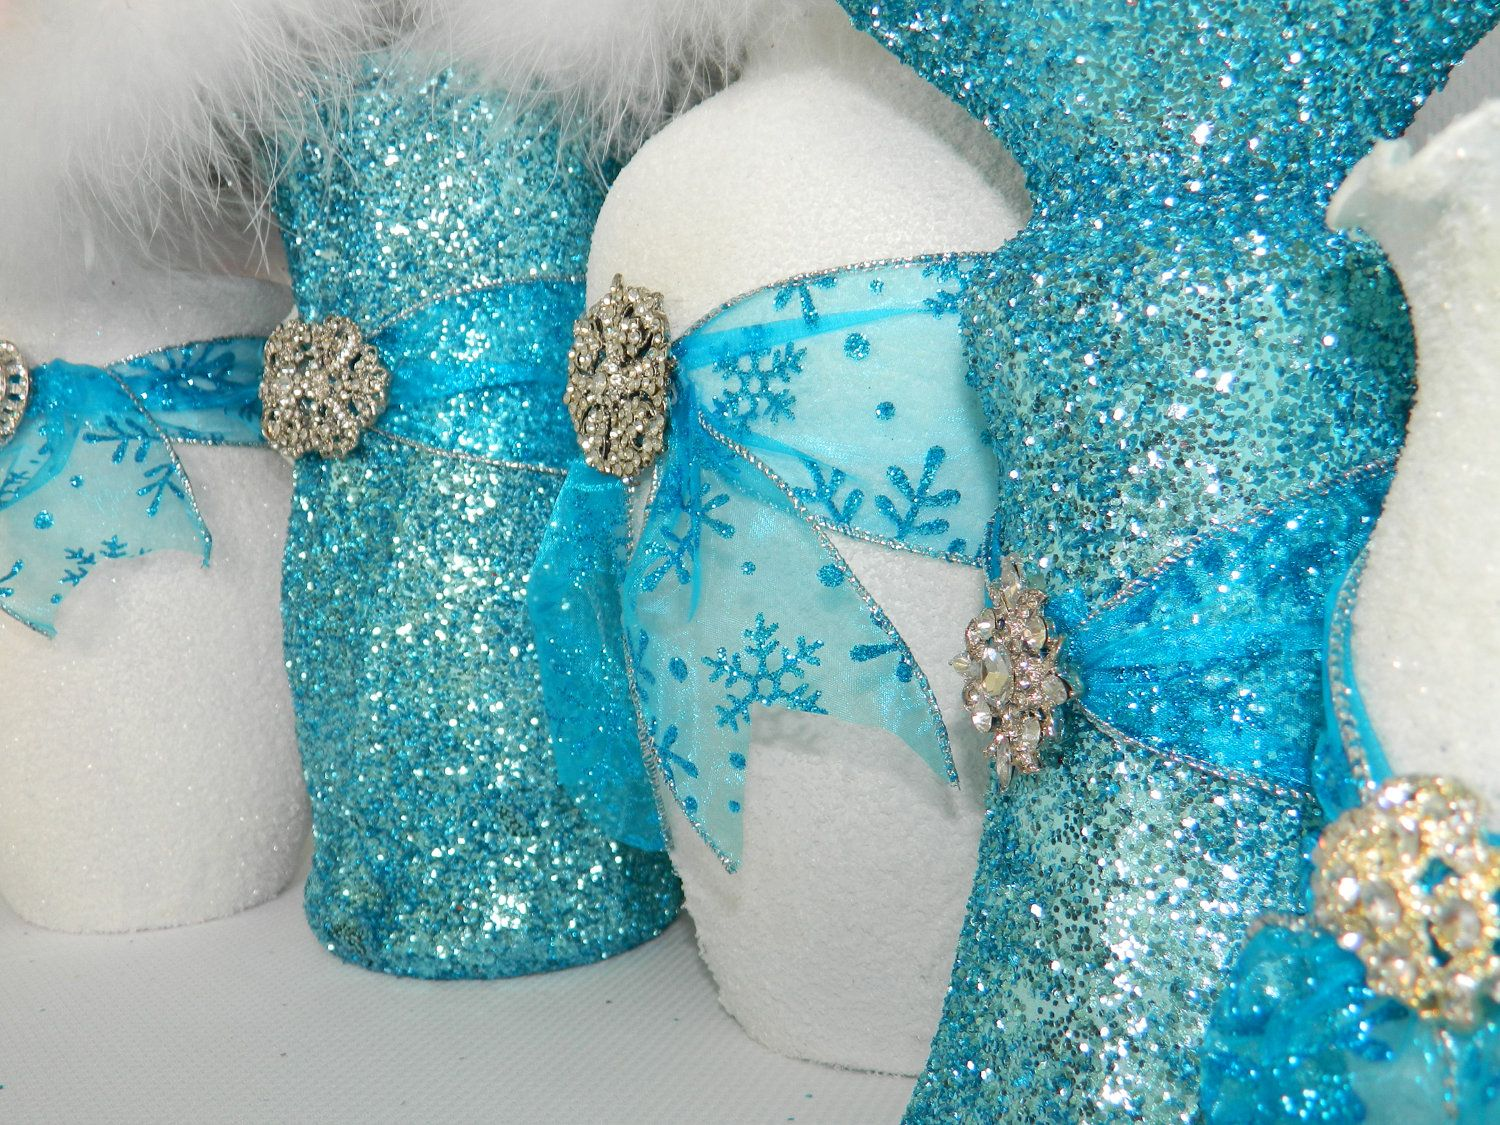 Exceptional Turquoise Wedding Decorations | Wedding Ideas Turquoise Wedding Theme  Reception Decoration Ideas .